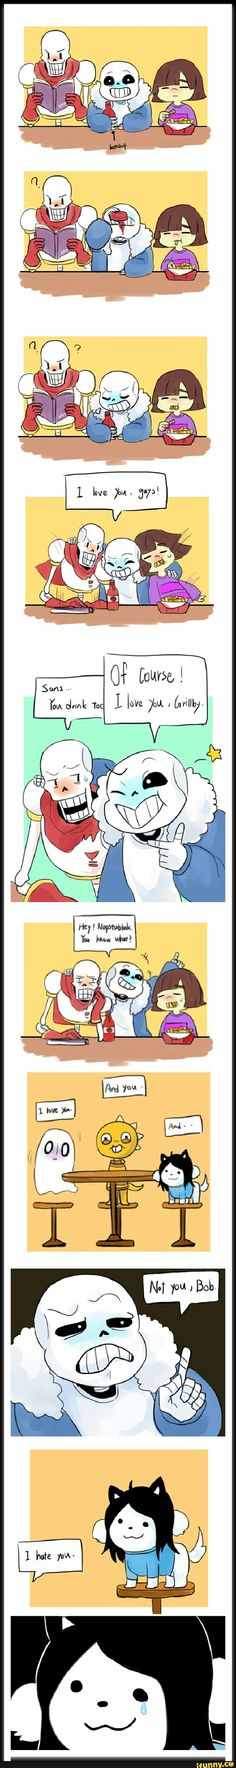 Undertale-- Lol, is Sans drunk? On ketchup?! And poor Bob XD>>>that last comment is the only thing I can say